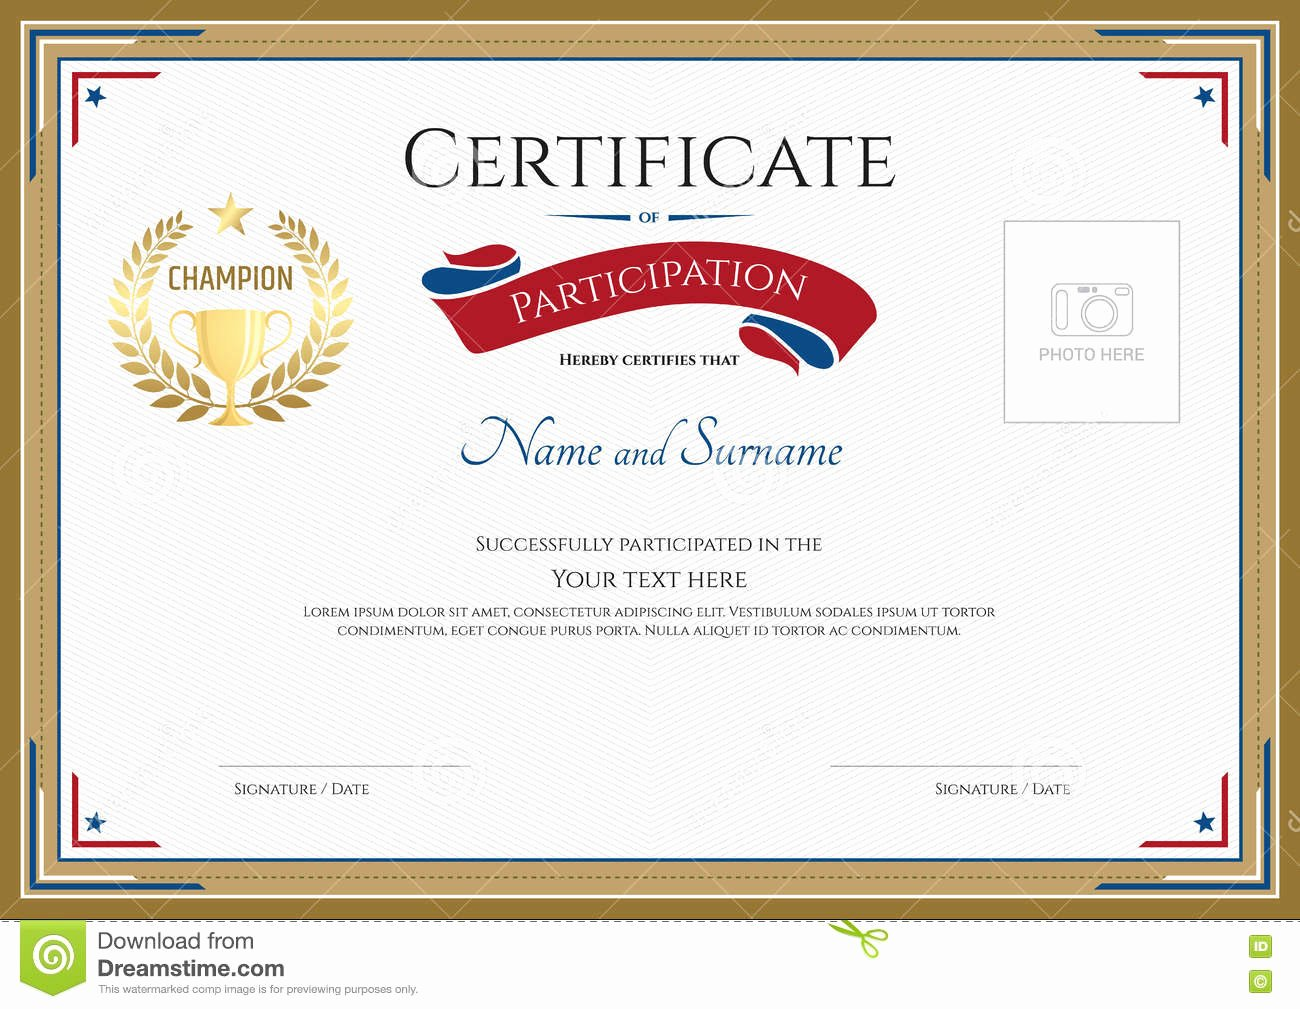 Certificate Of Participation Templates Awesome Certificate Participation Template In Sport theme Stock